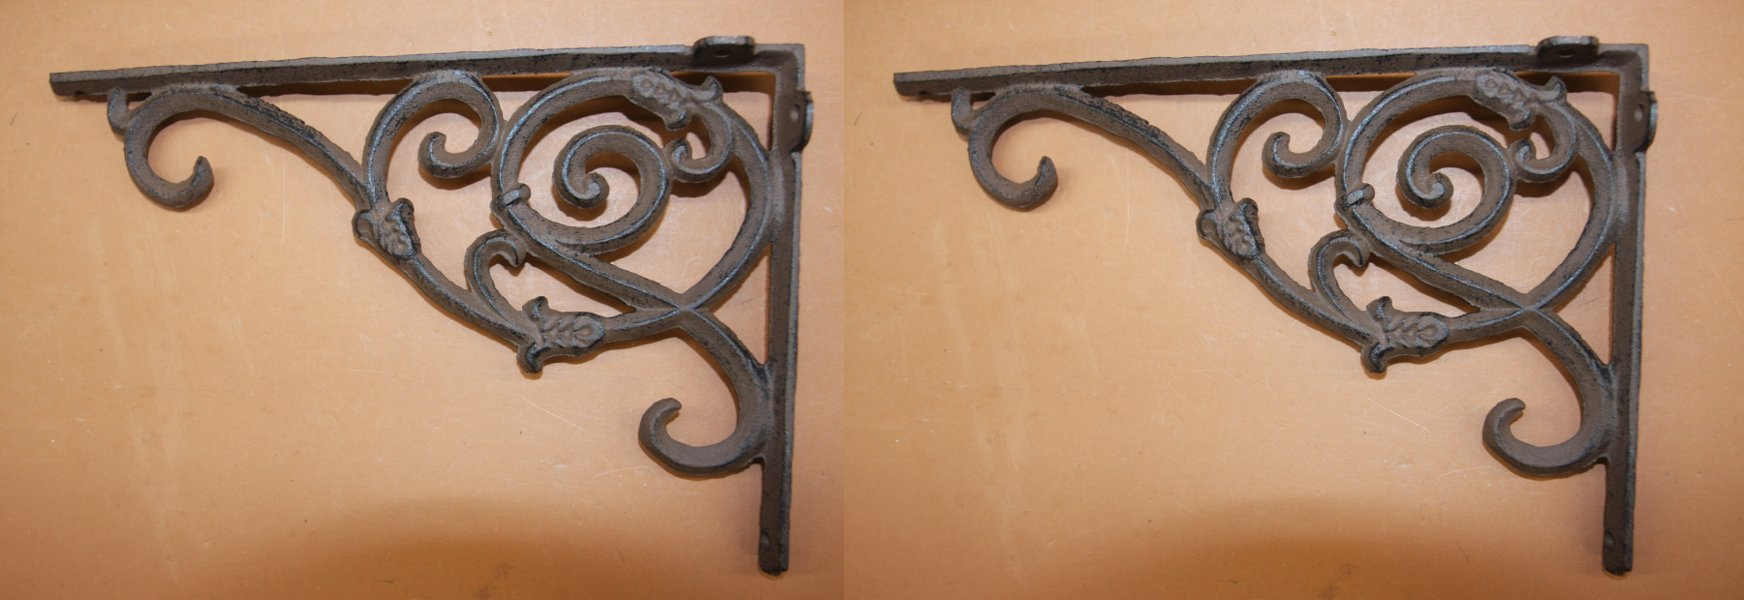 Elegant Americana Design Solid Cast Iron 9 1/4 inches, Vintage-look scroll work, Set of 2, B-62